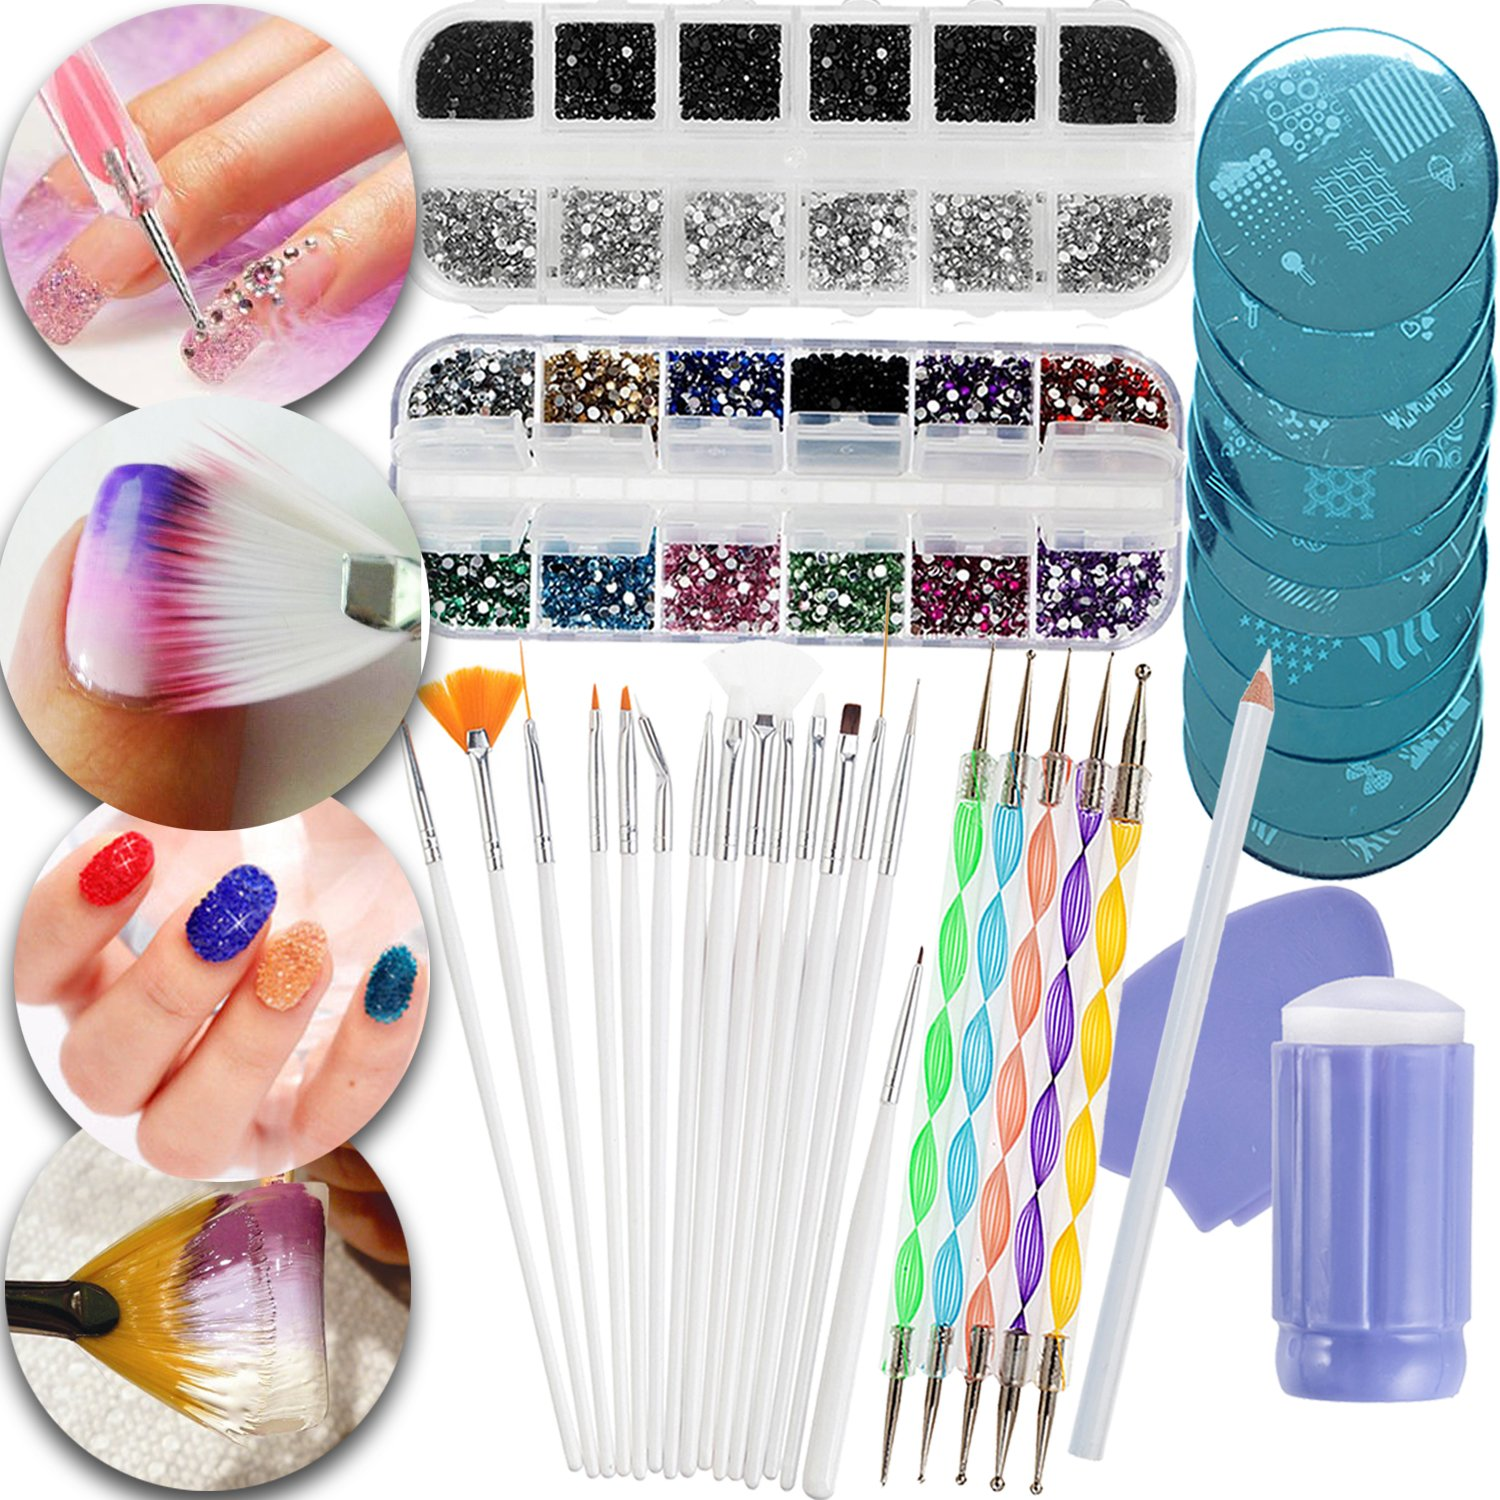 Nail Art Manicure Designs Set Including Rhinestones Crystals Decorations In Different Colors, Dotters Dotting Tools, Brushes, Stamping Plates Templates, Stamper, Scraper and Picker Pencil